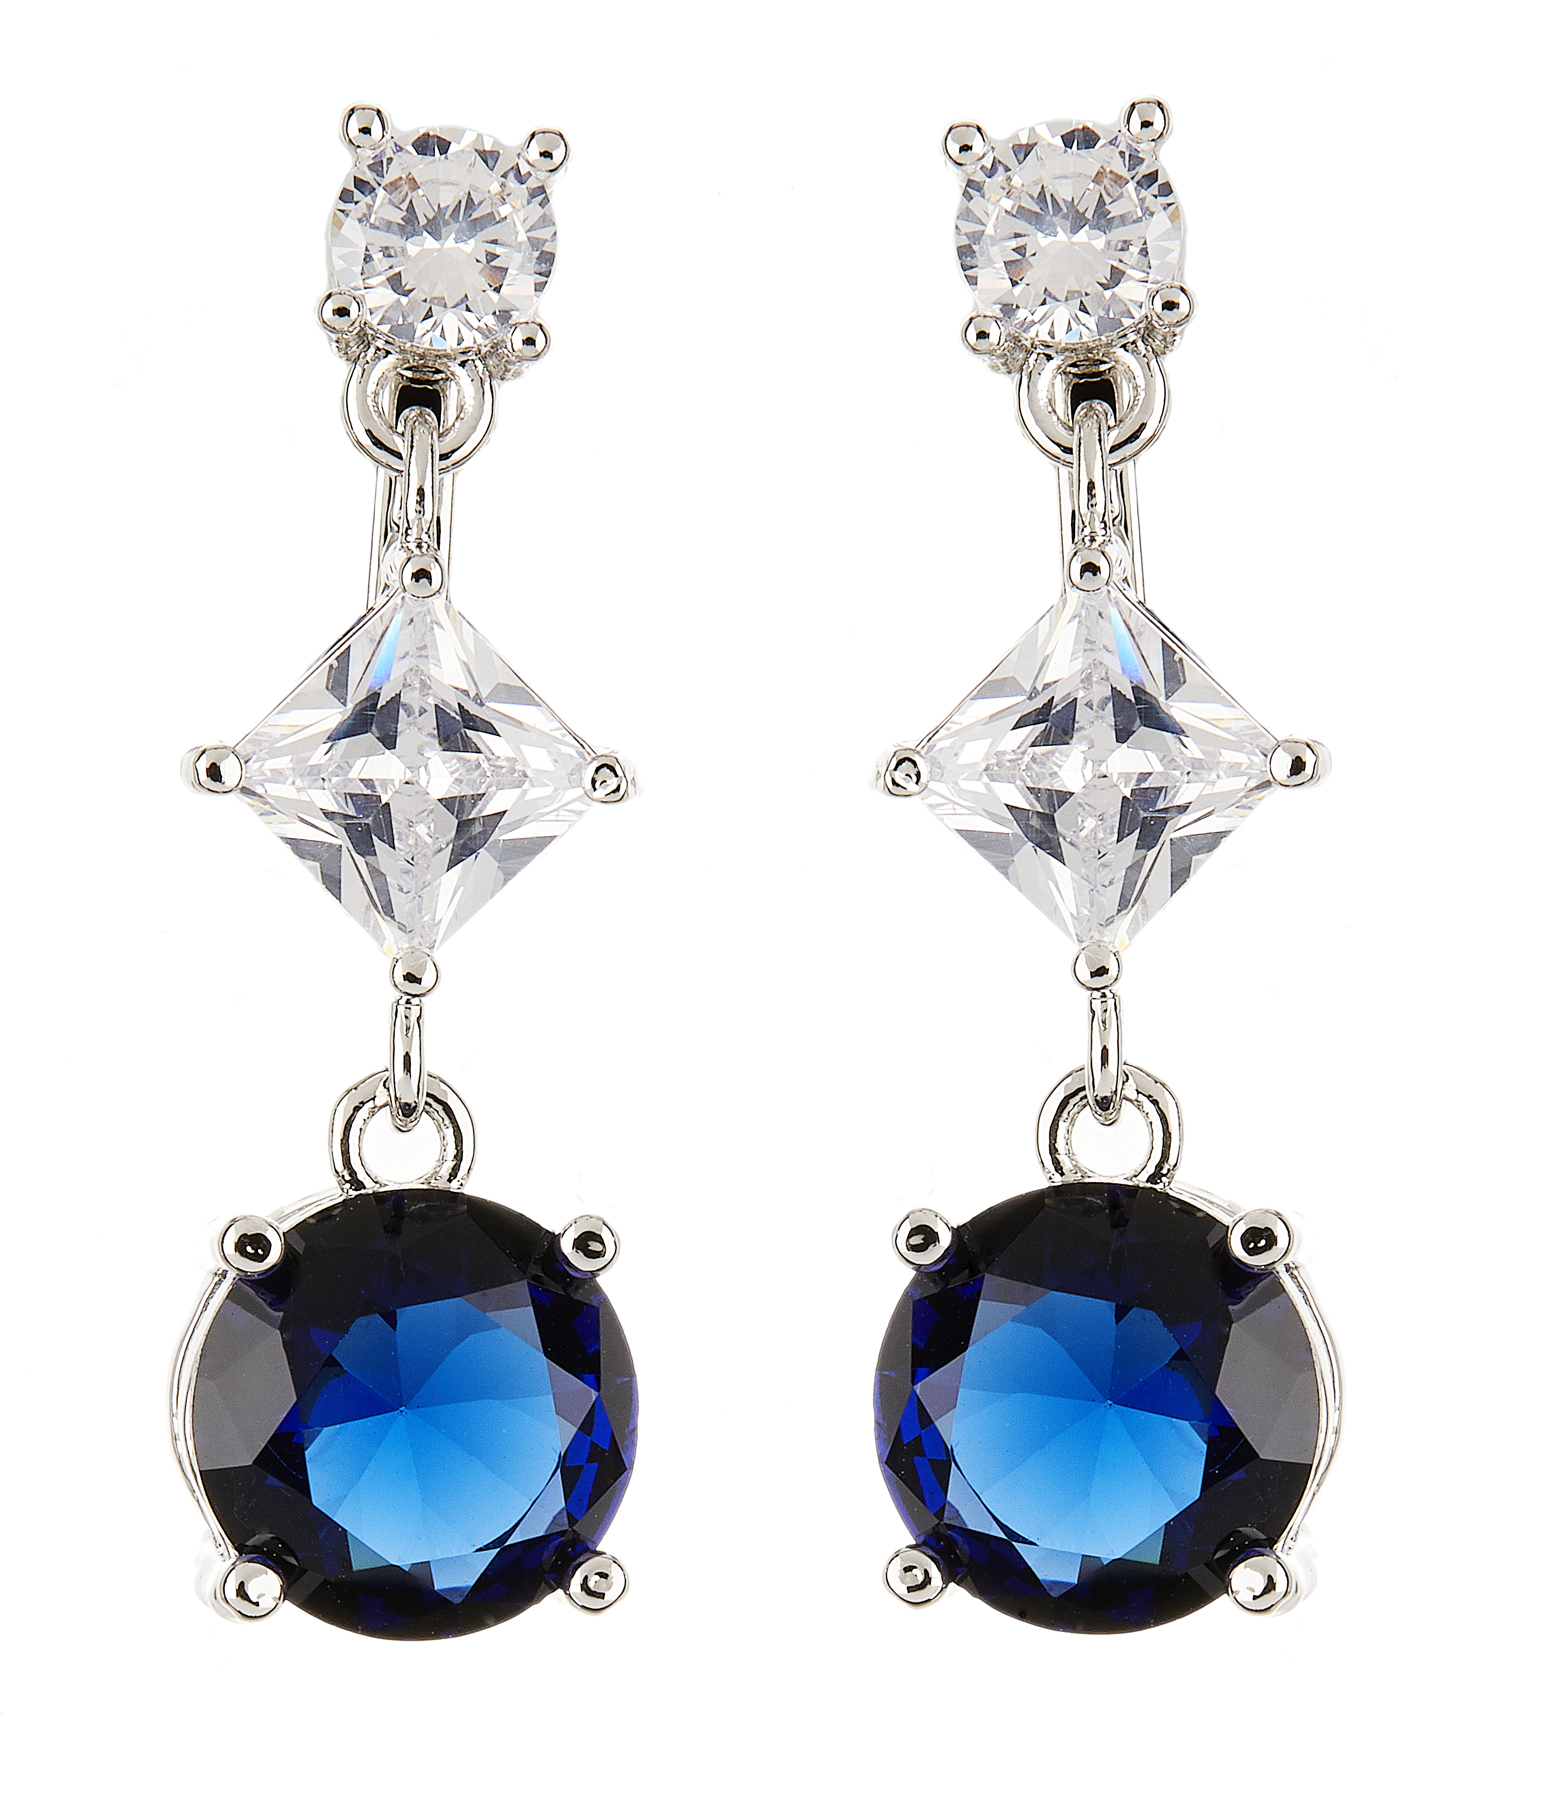 Clip On Earrings - Namita - silver dangle earring with a blue and two clear cubic zirconia stones